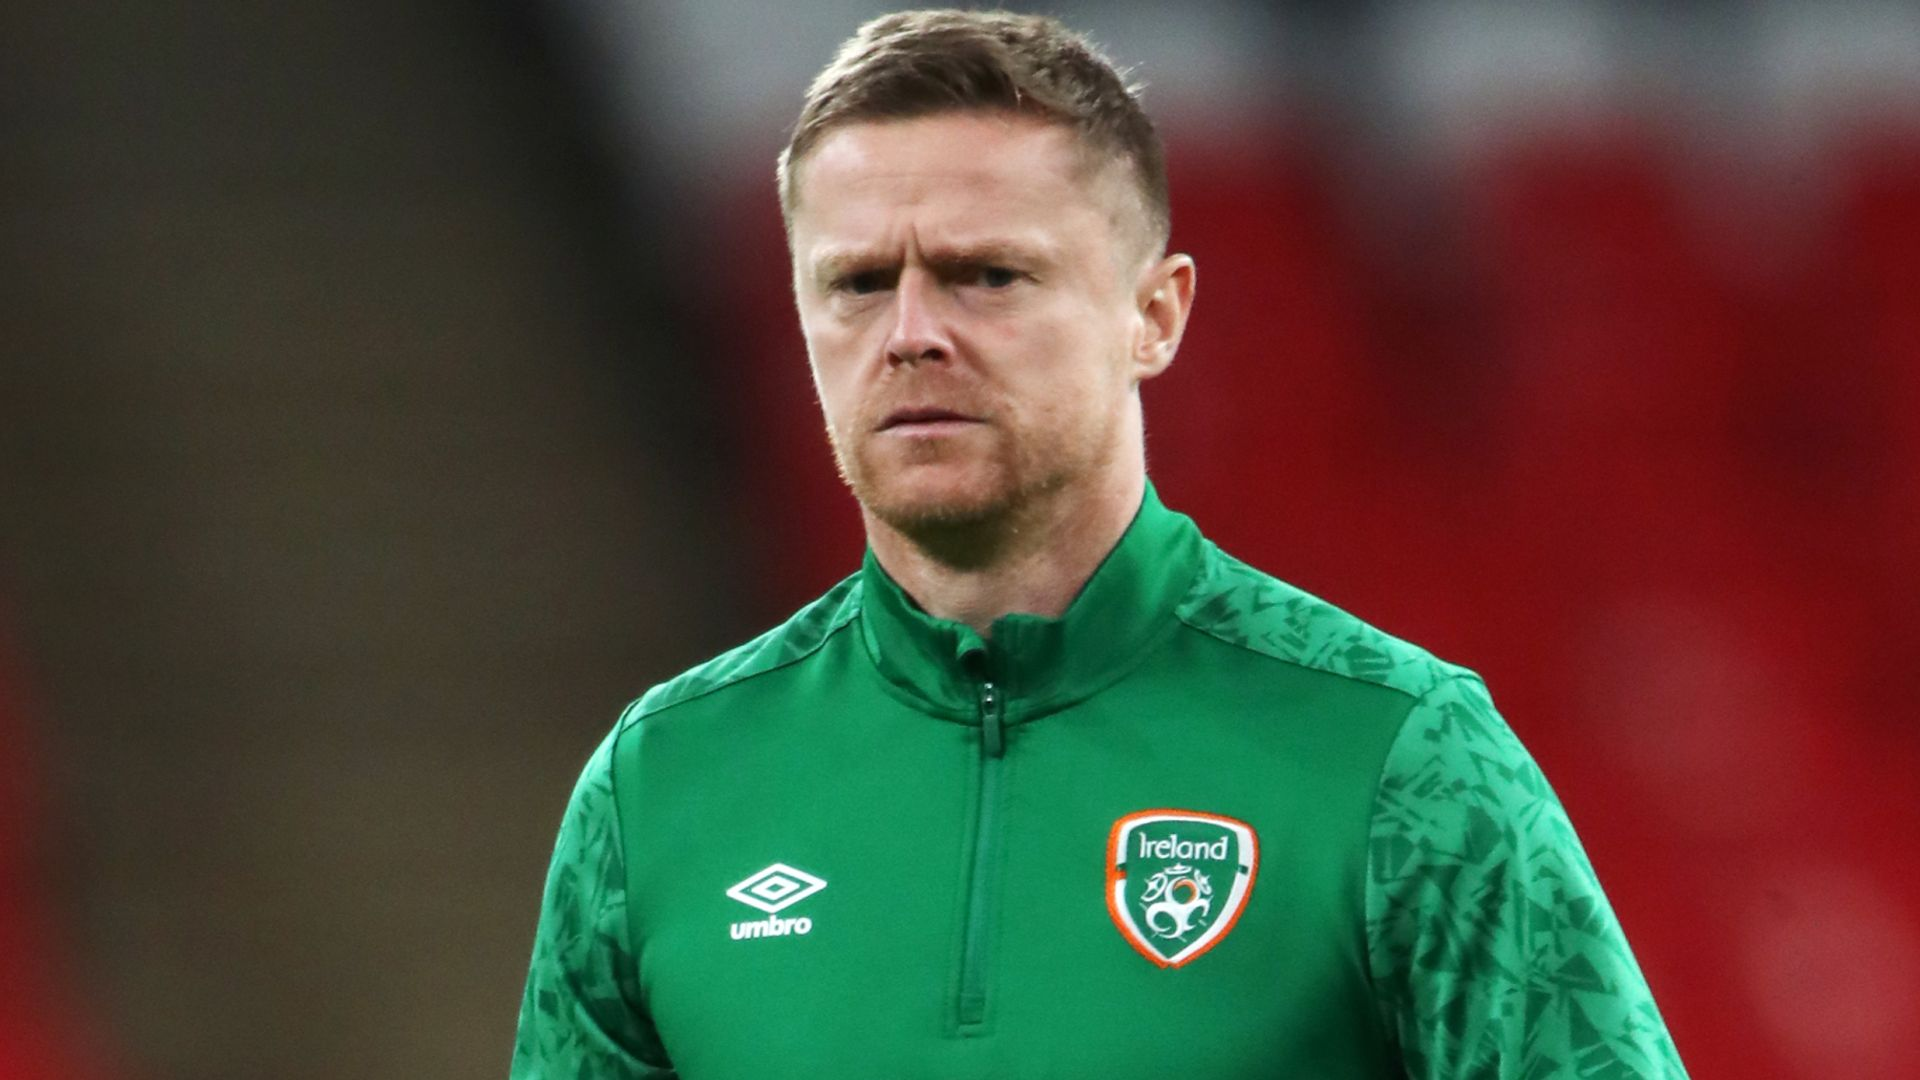 Damien Duff steps down from Republic of Ireland coaching role | Football News